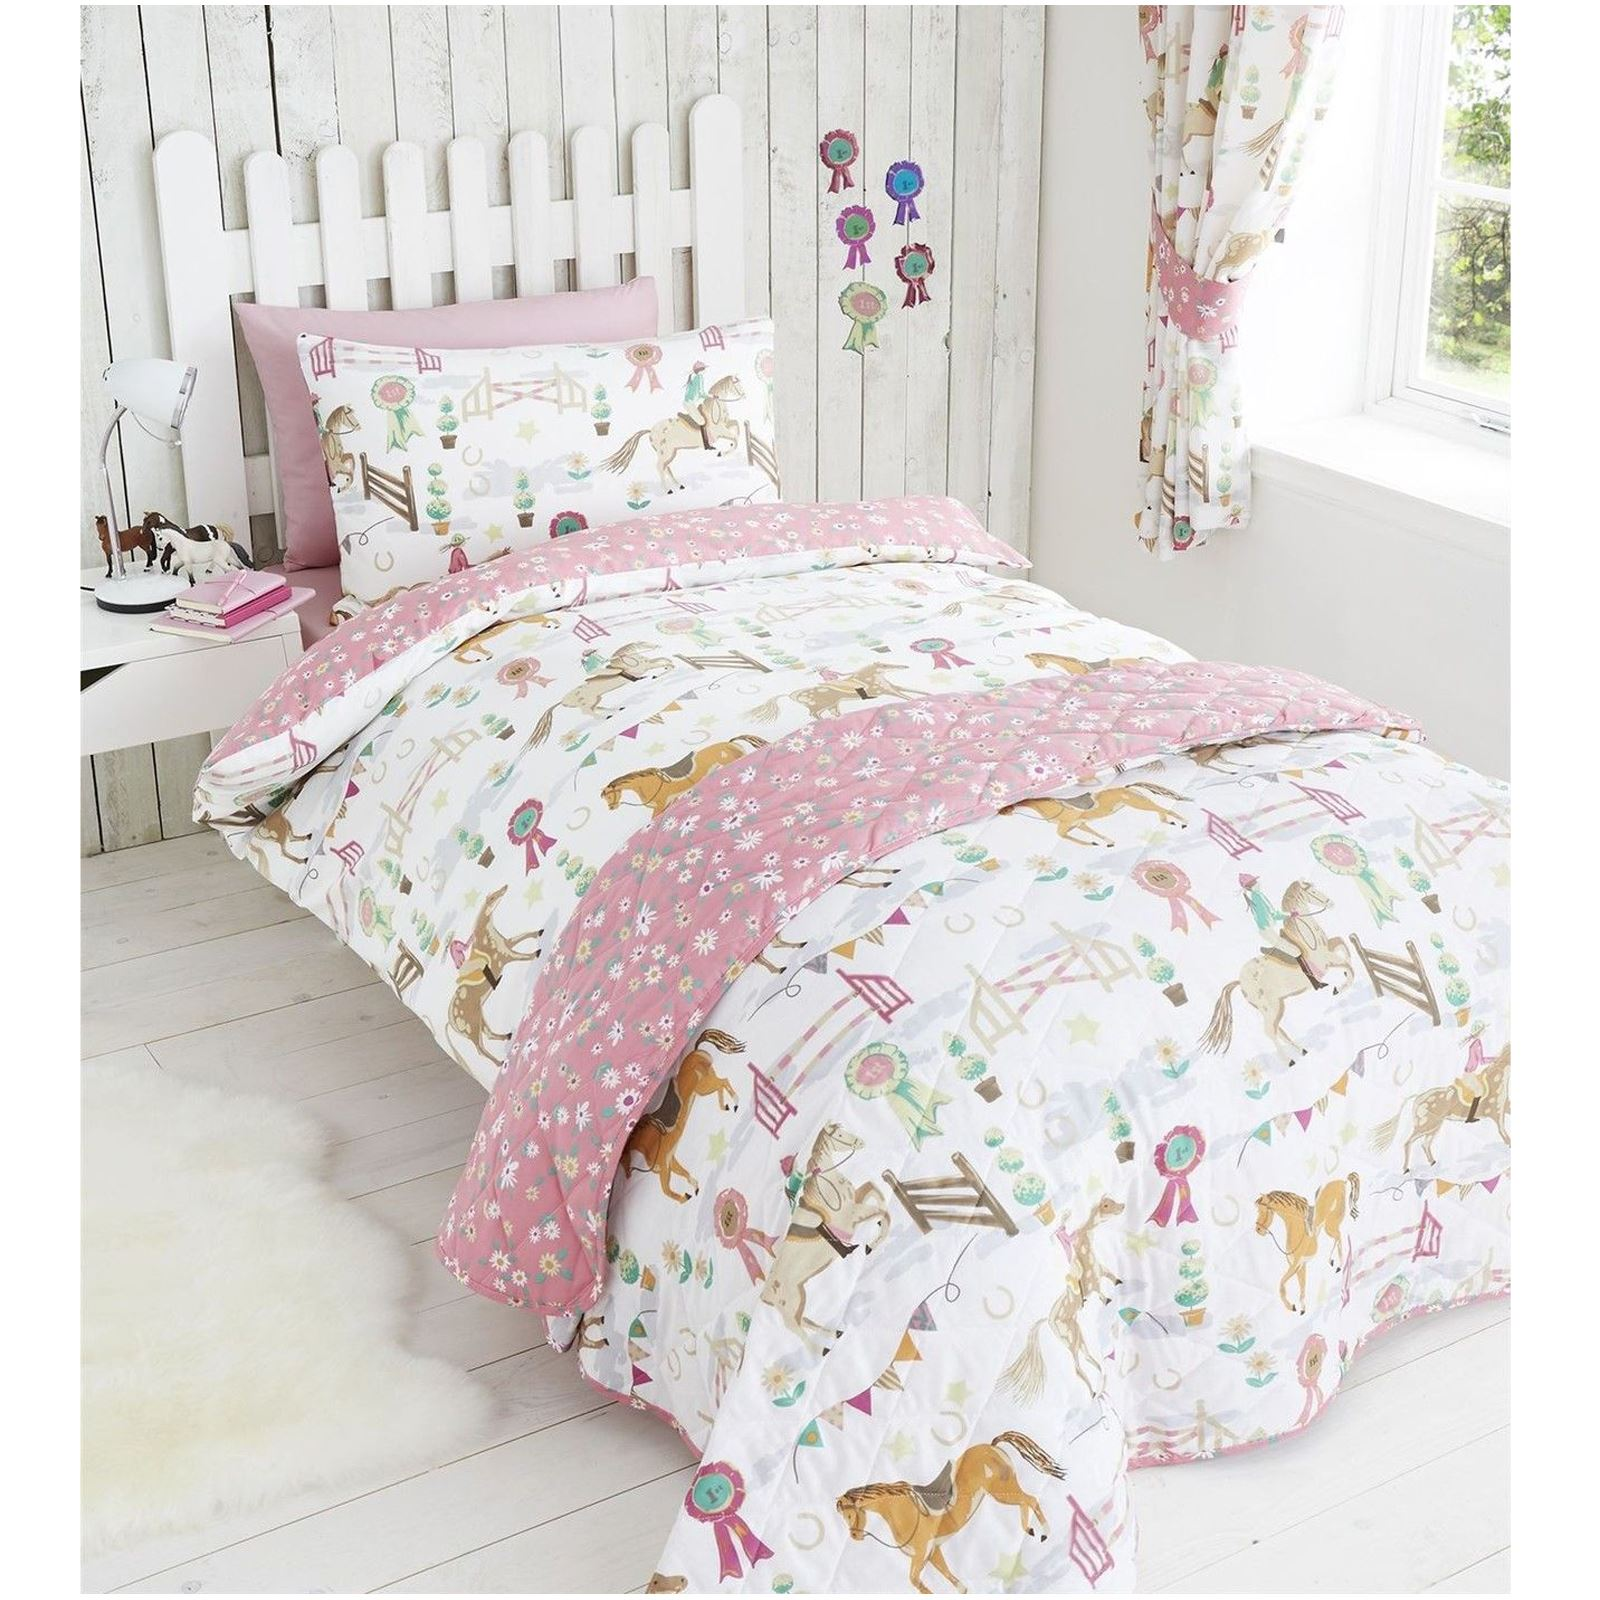 Horse Show Duvet Cover Sets In Various Sizes Girls Bedding